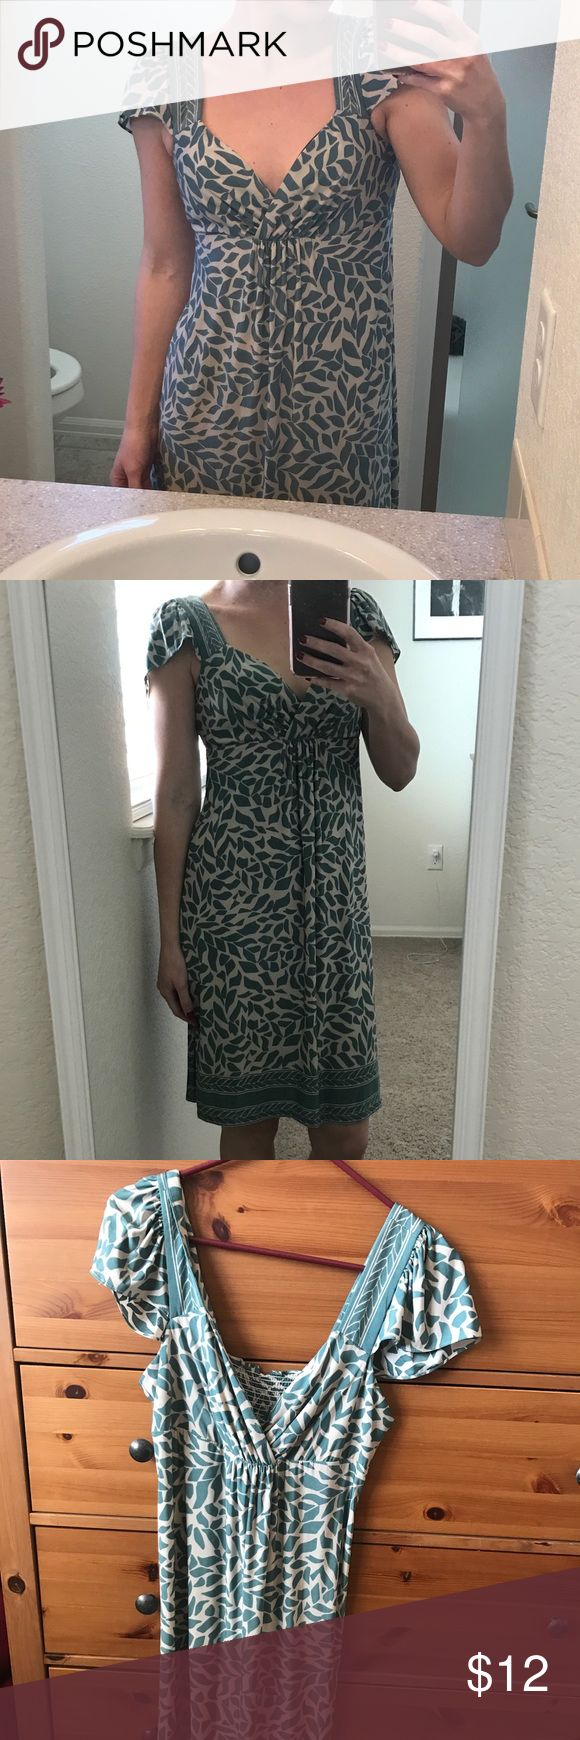 Beautiful Spring dress Beautiful teal green & cream spring dress. Adorable on! Size small, forever 21. Forever 21 Dresses